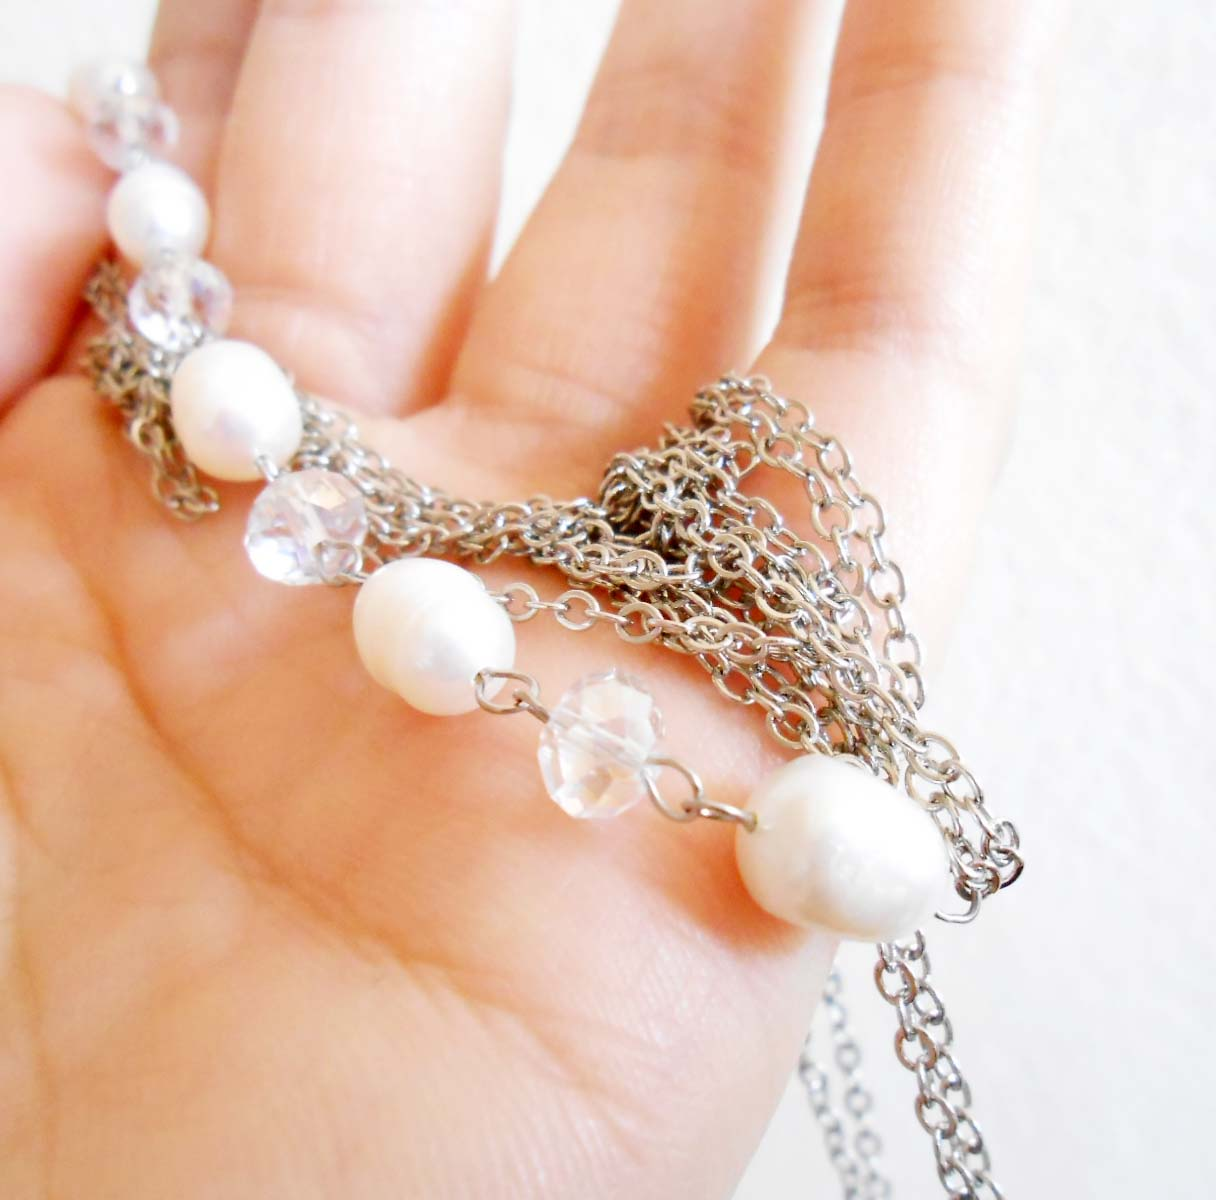 Body Chain With Pearls Beads Crystals Thin Chain Body Jewelry